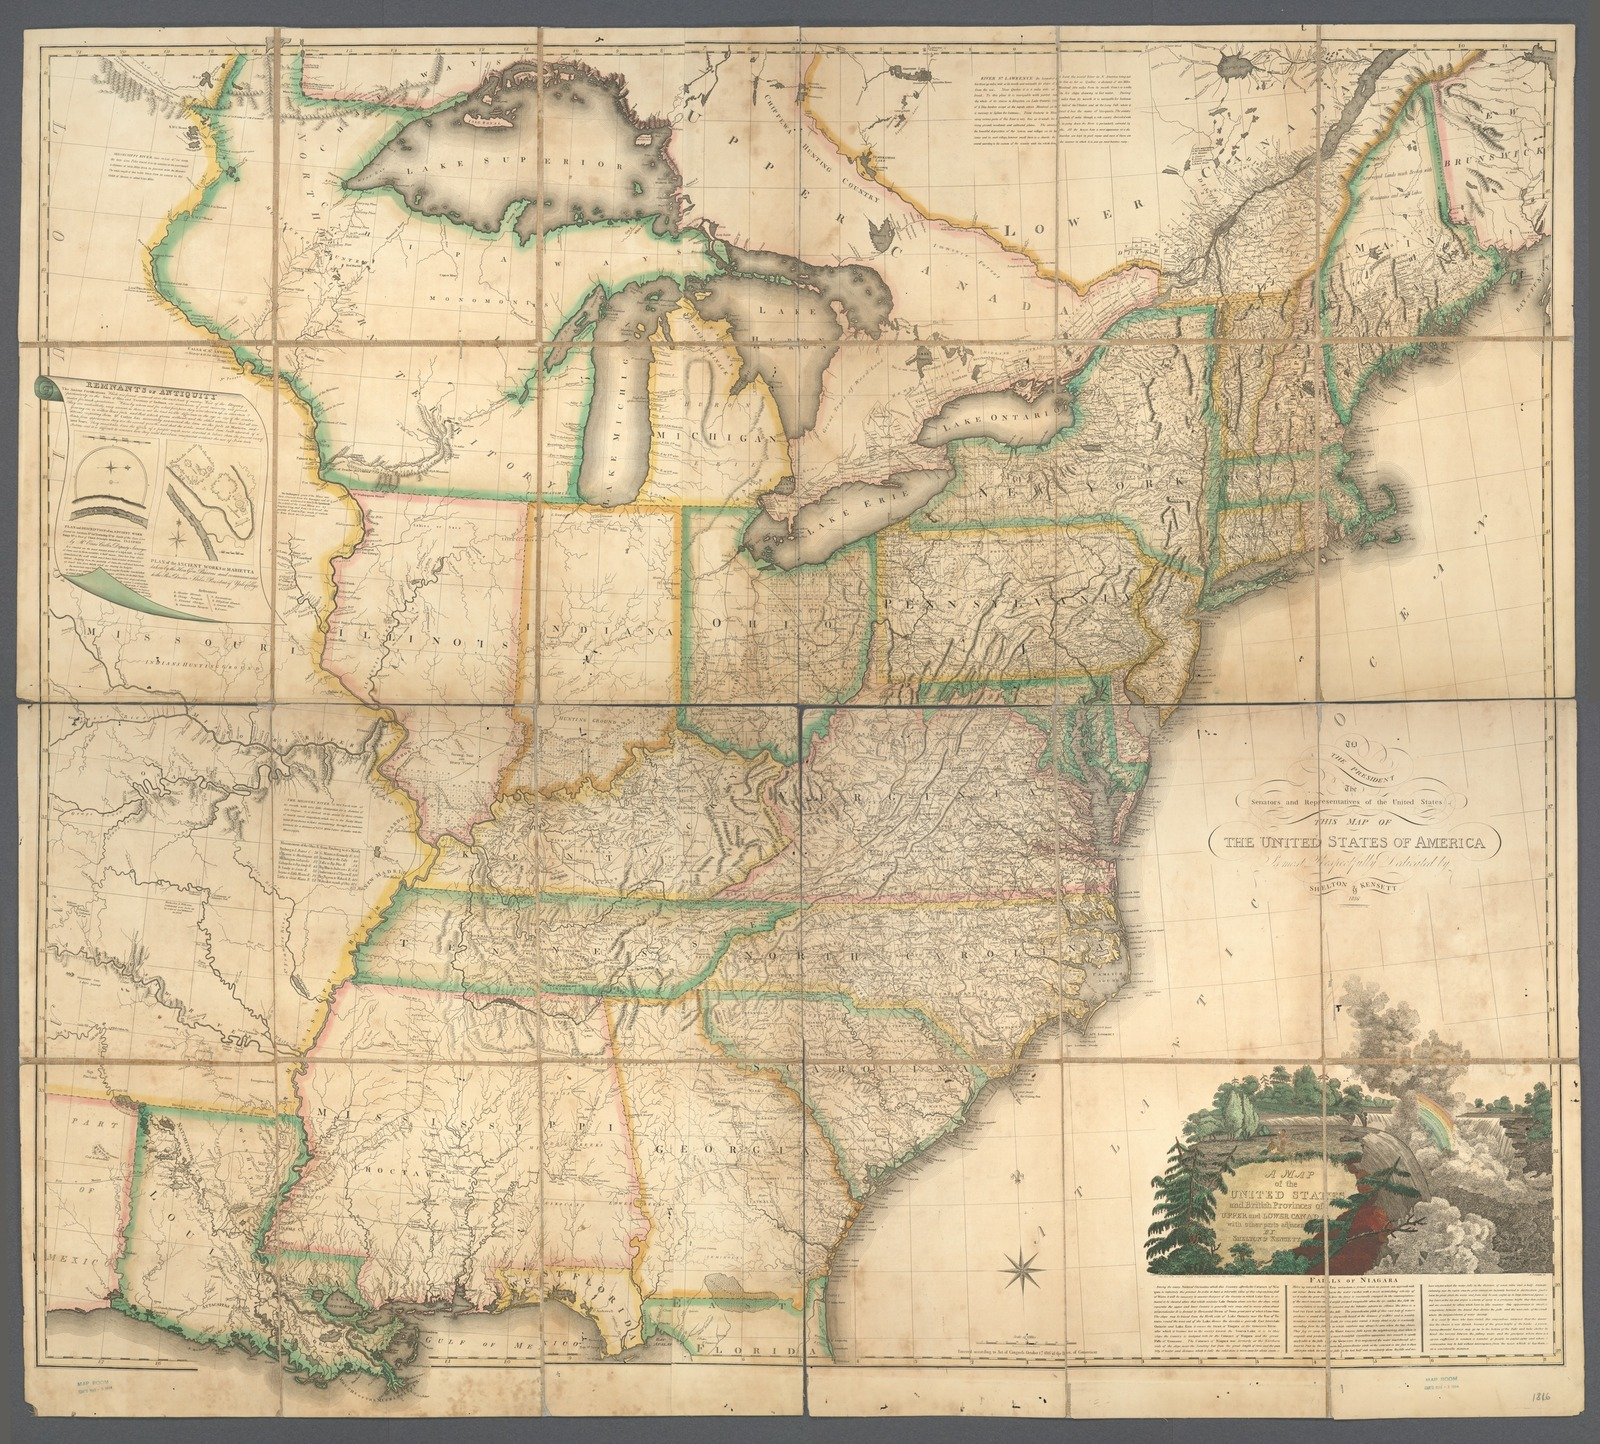 Map Of England Provinces.A Map Of The United States And British Provinces Of Upper And Lower